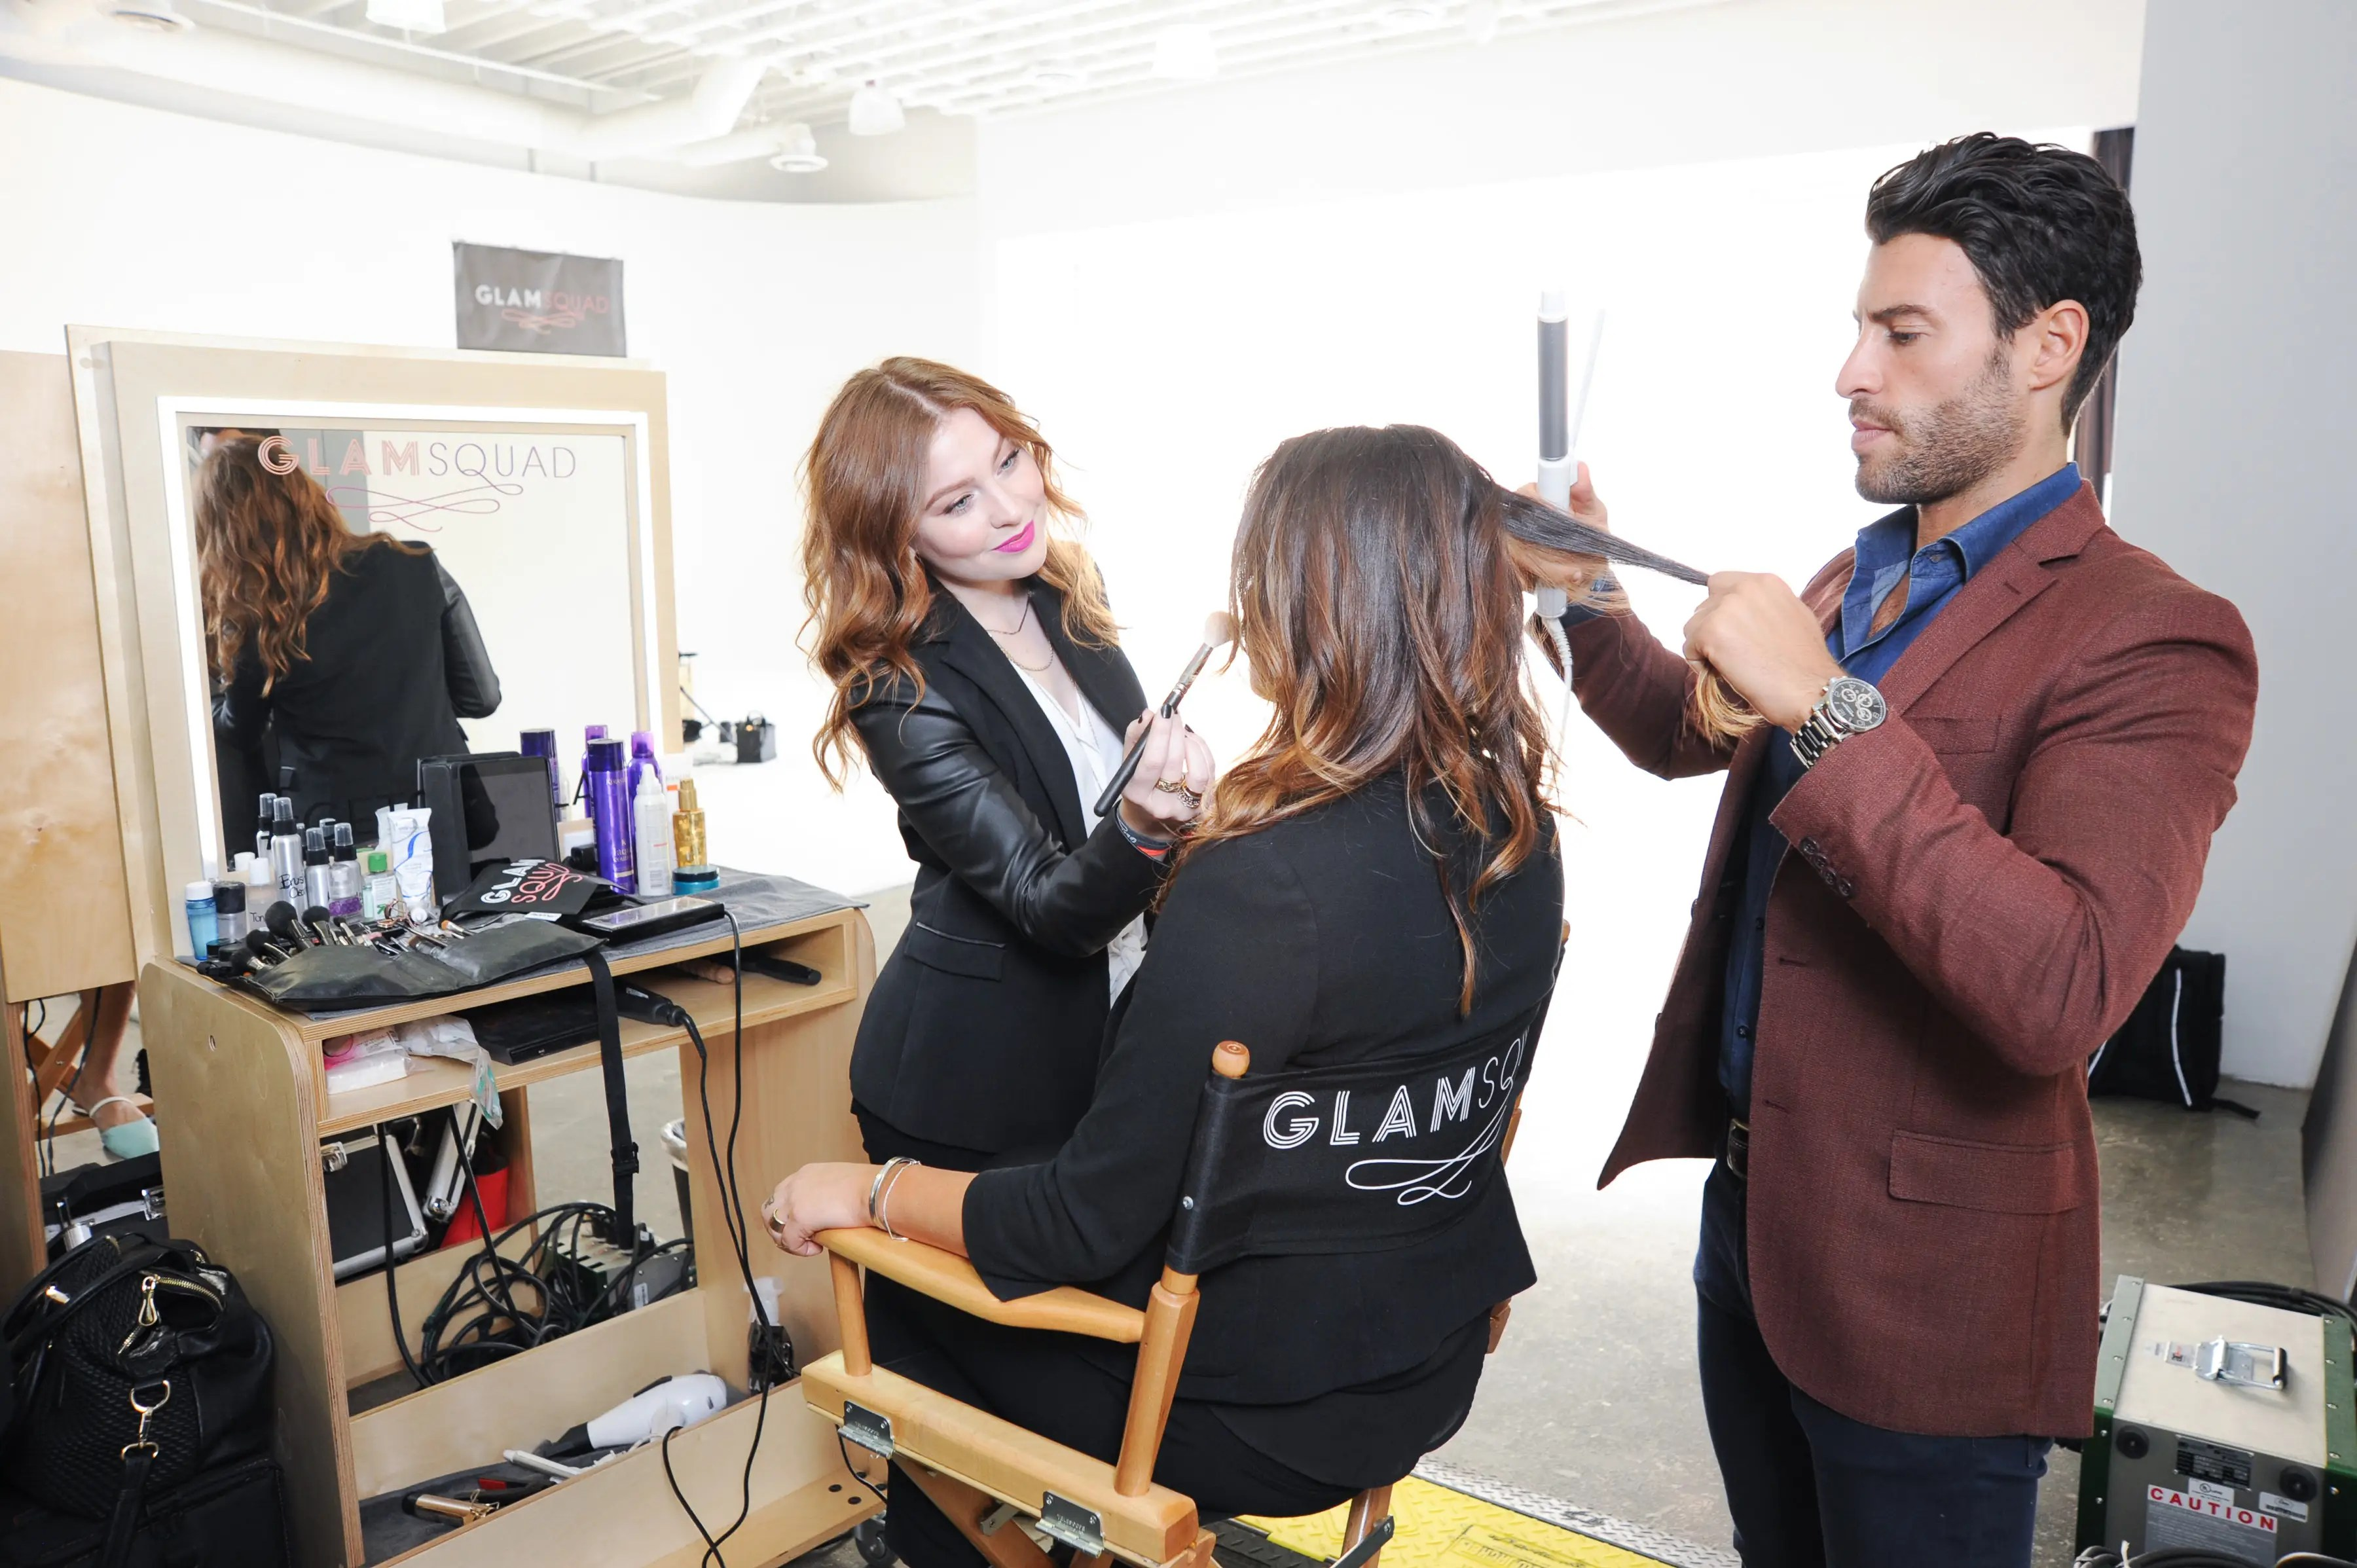 GLAMSQUAD brings hair salon-quality blowouts to your apartment.